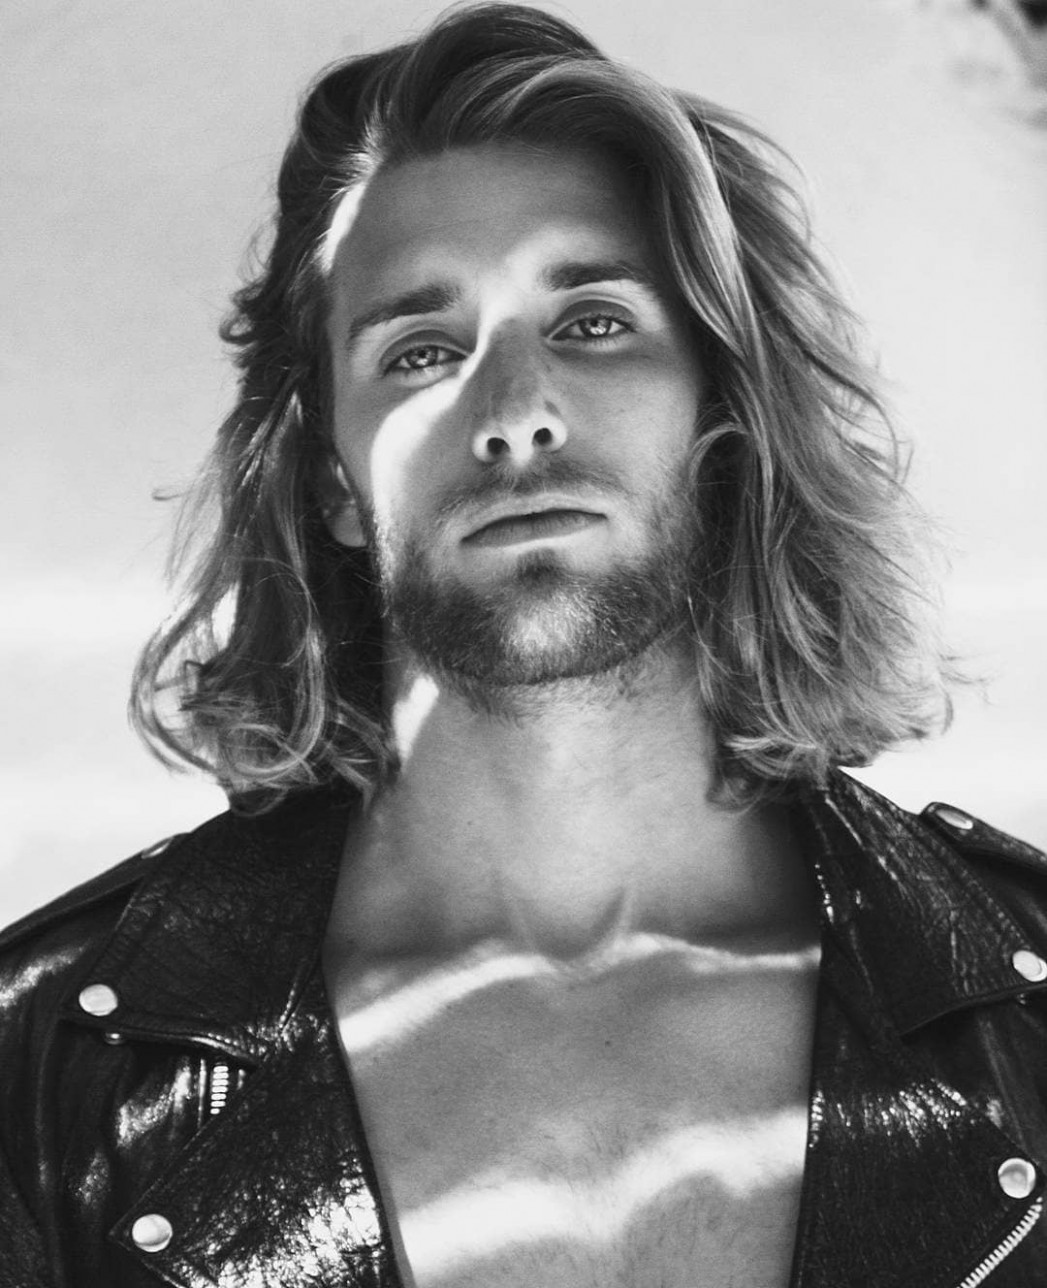 8+ Long Hair Hairstyles + Haircuts For Men (8 Styles)